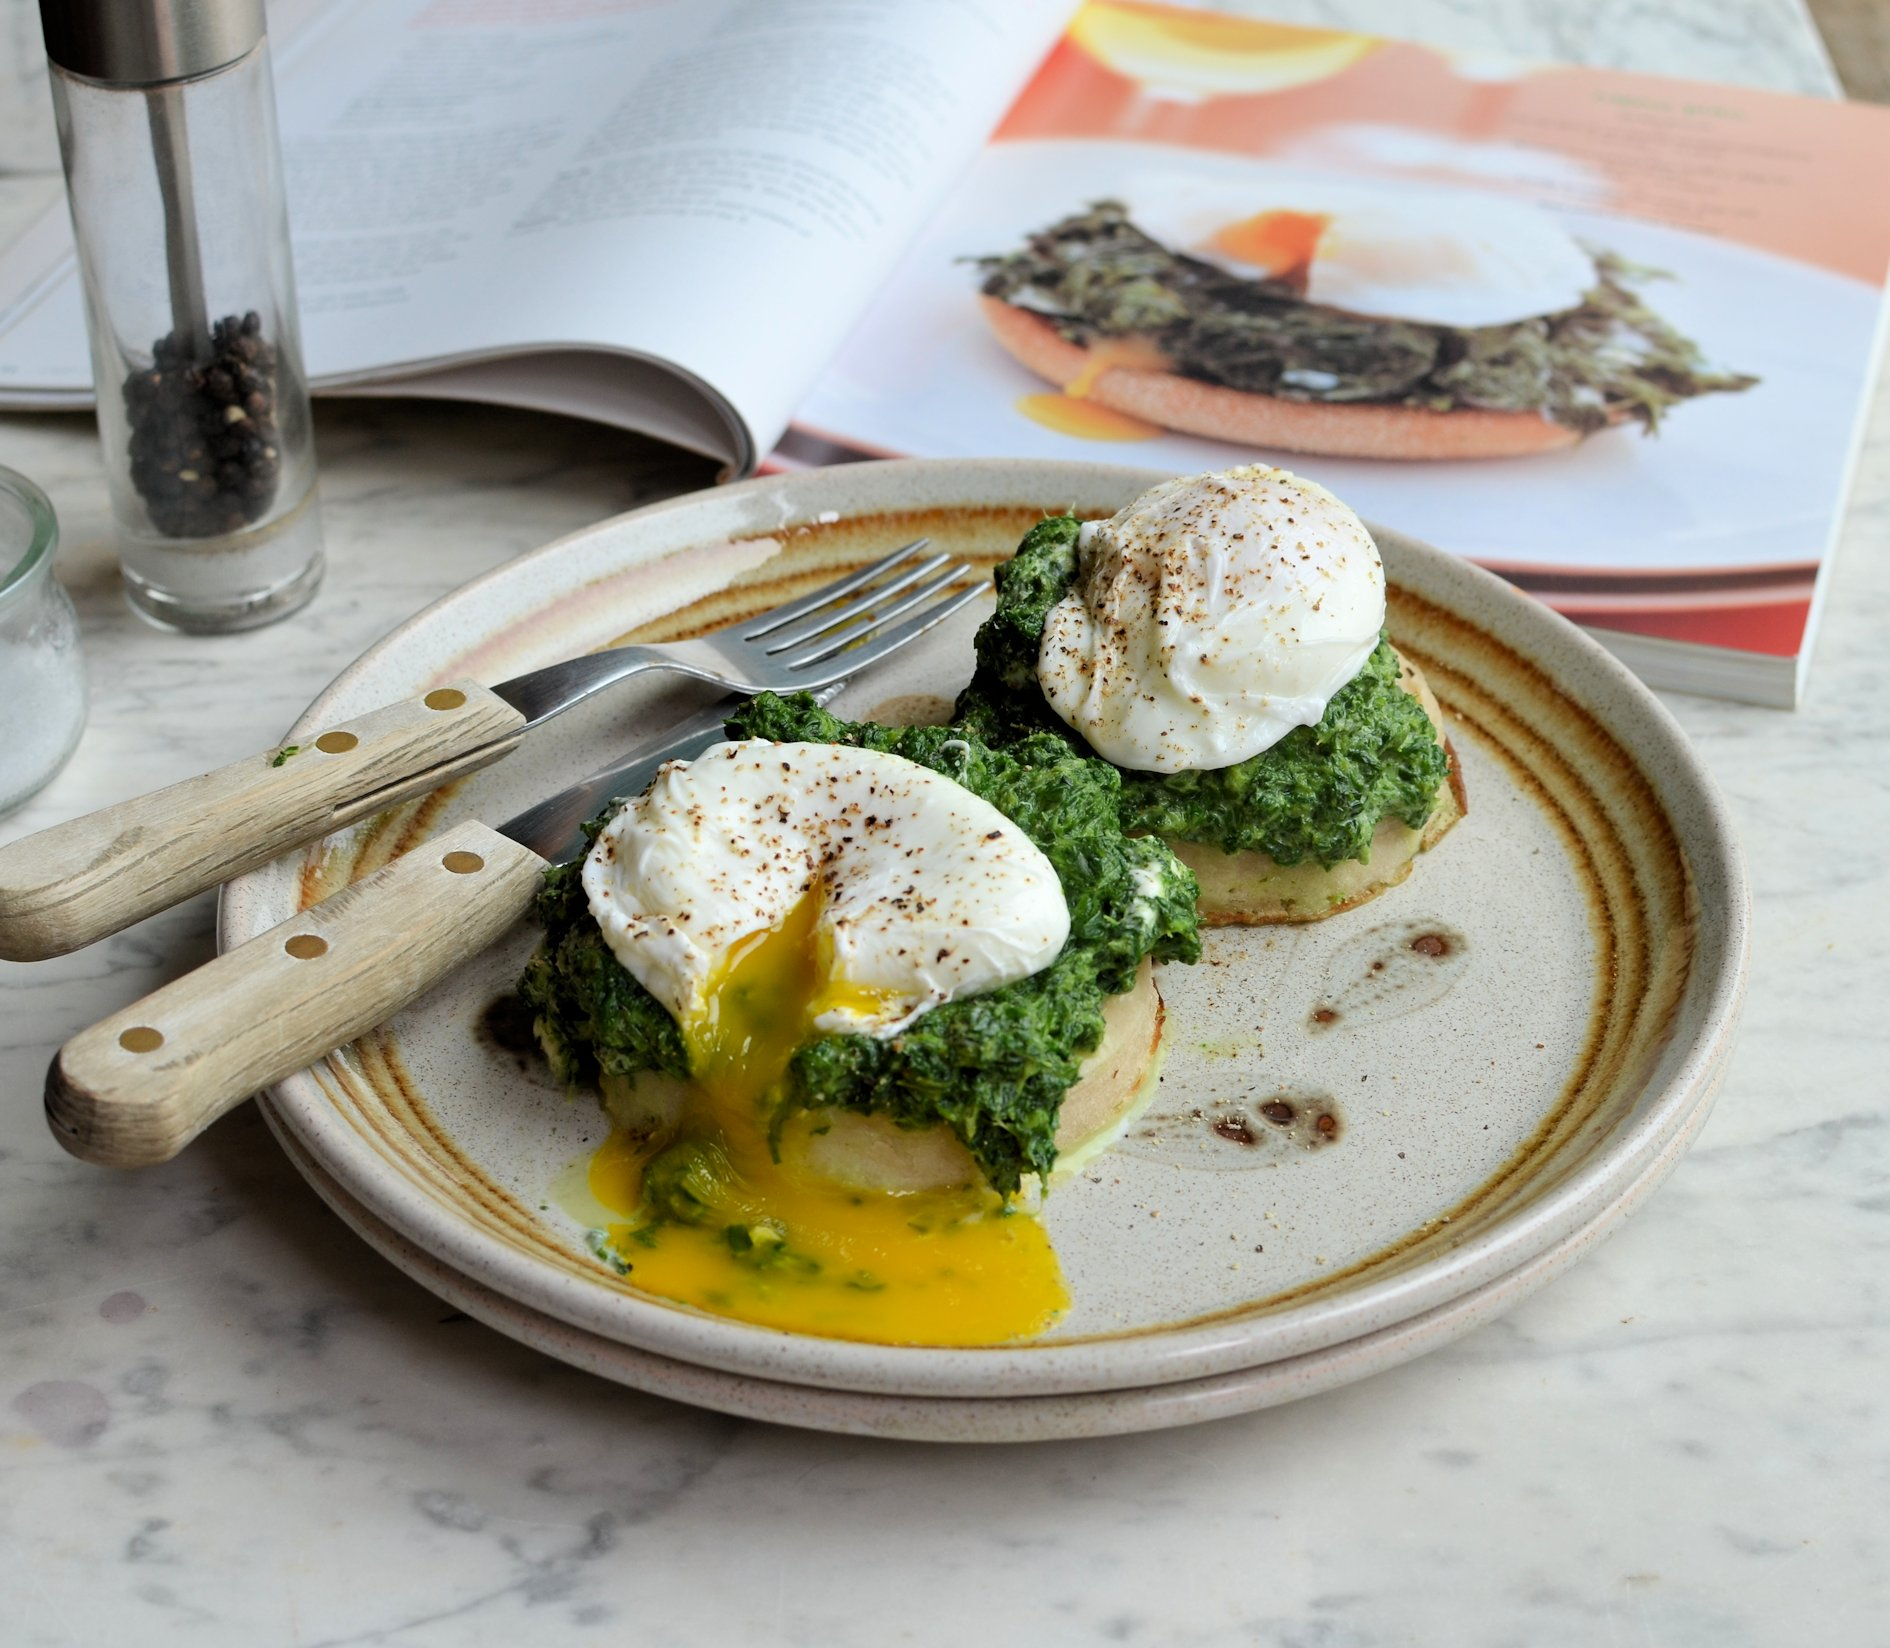 52 Diet Weight Watchers Breakfast Brunch Or Lunch Spinach And Poached Egg Muffins Recipe